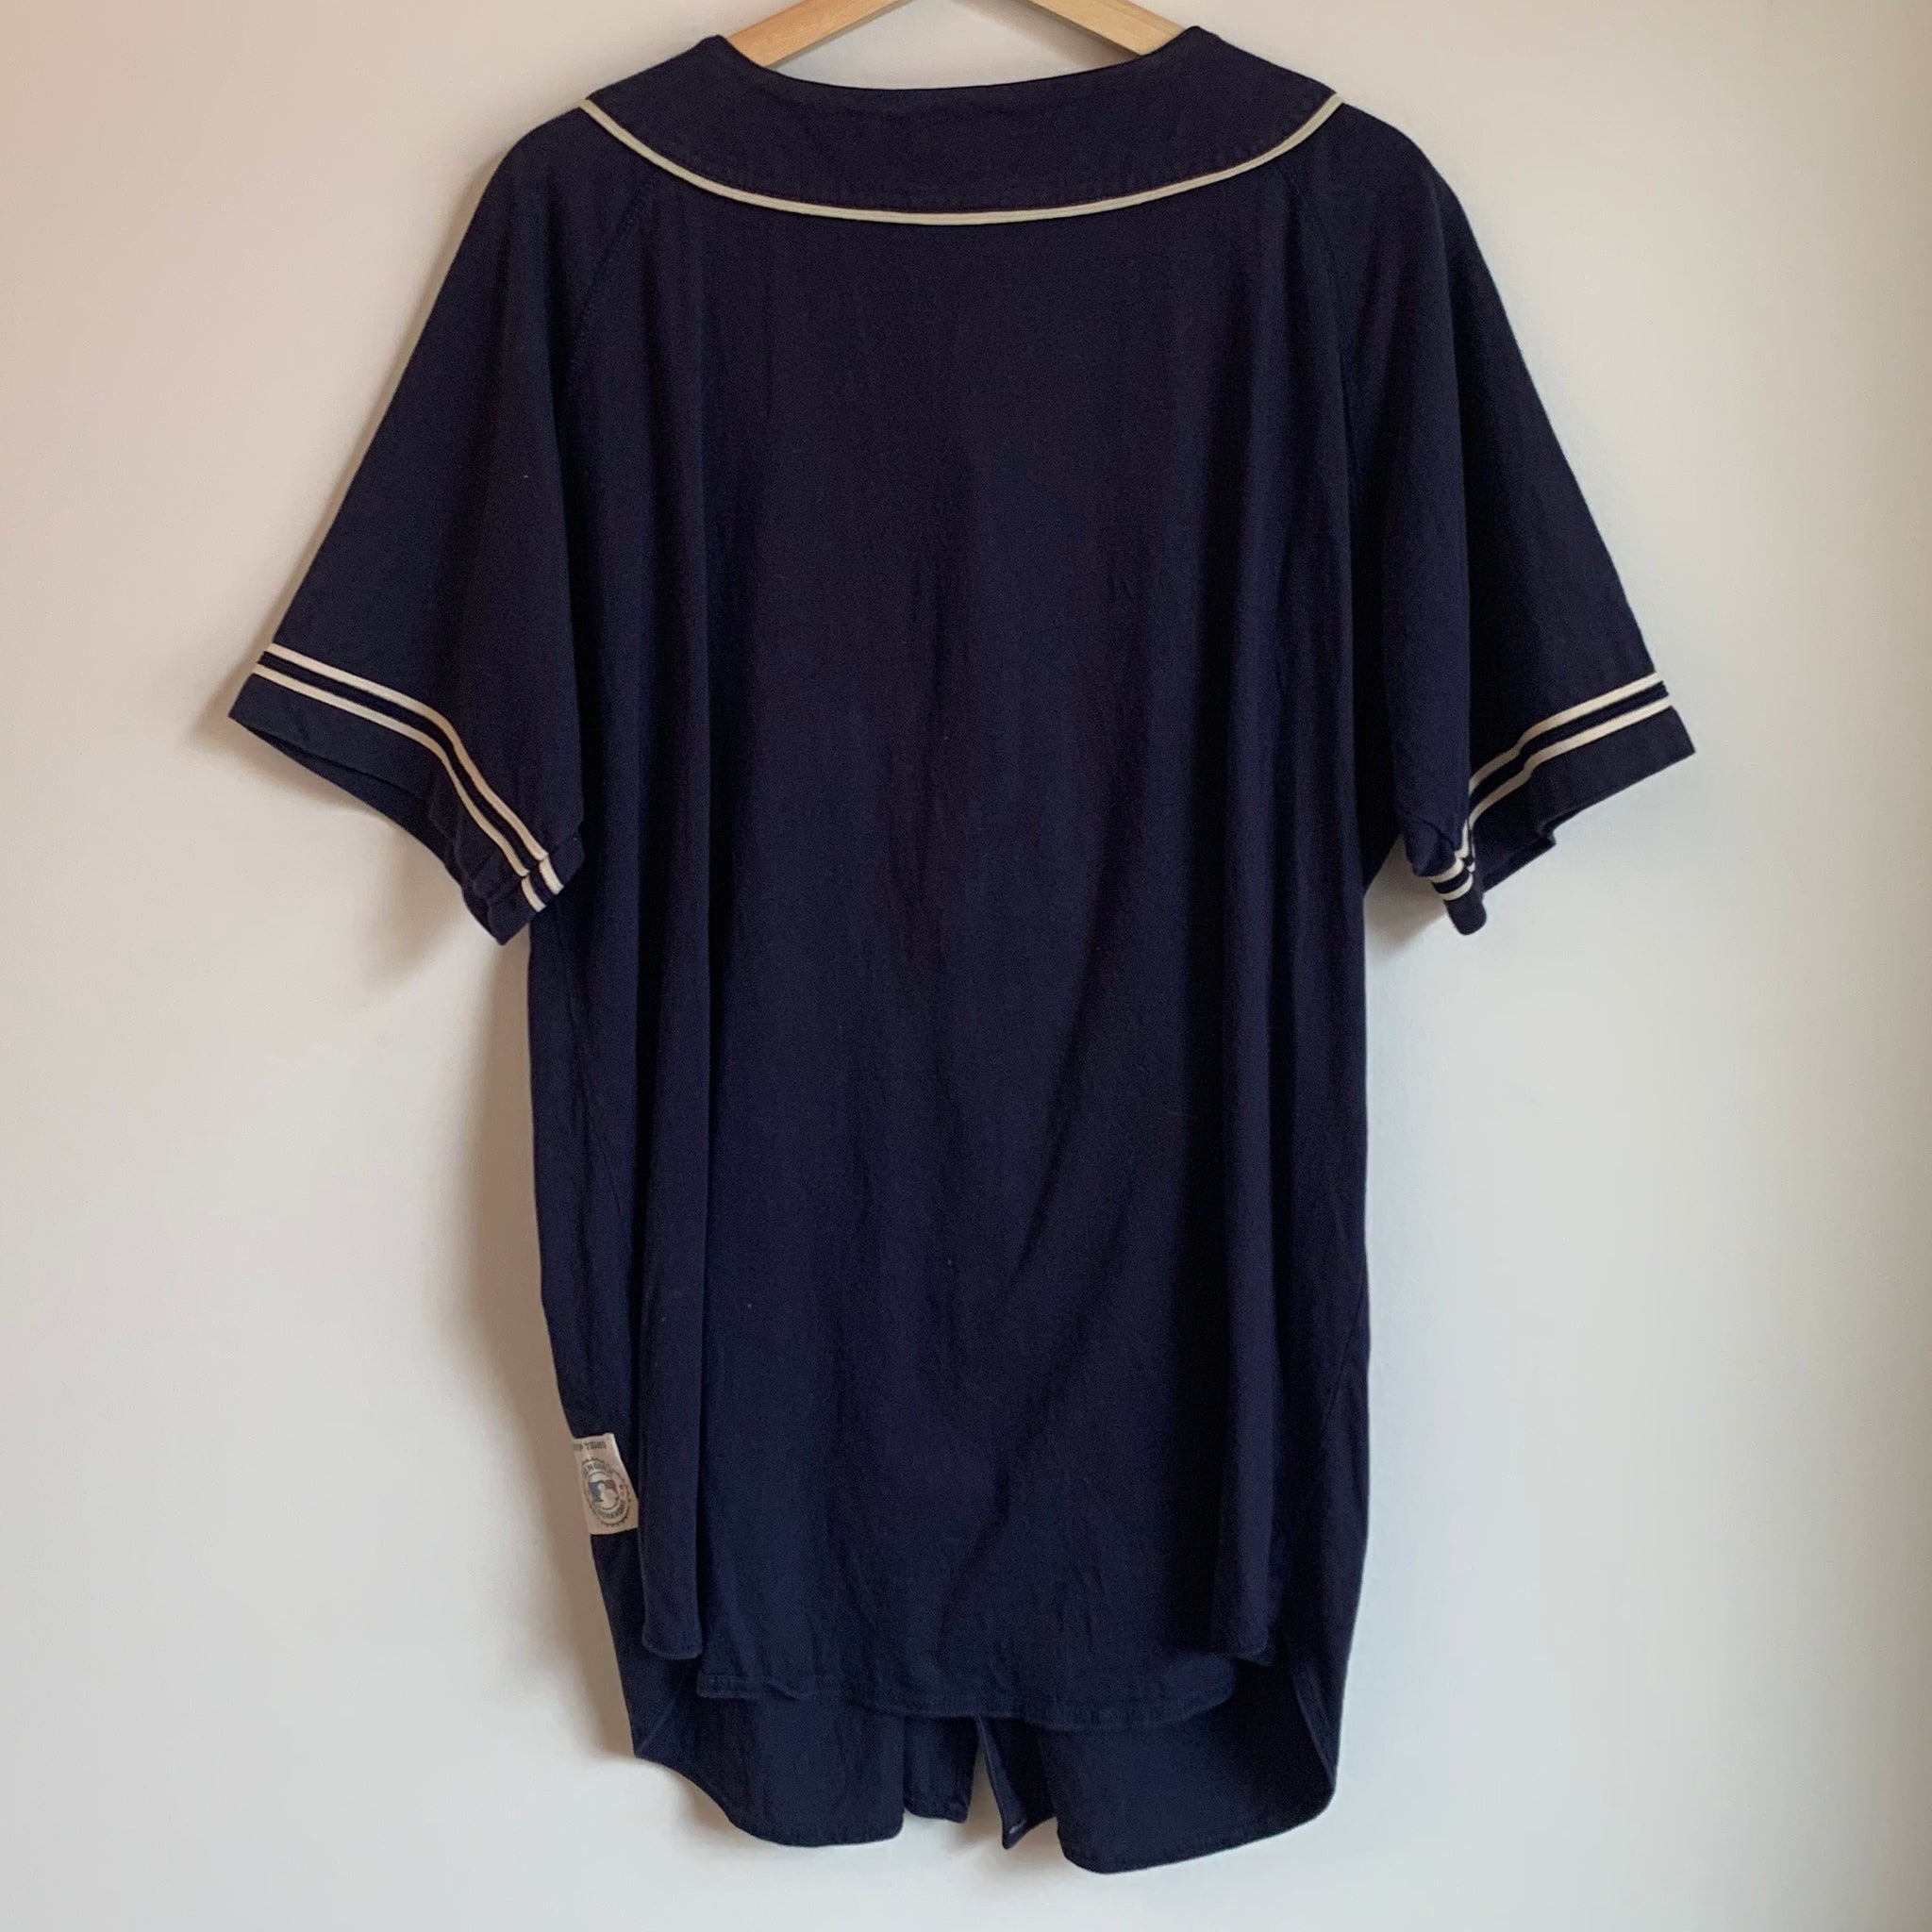 wholesale dealer 0dd3c 26d93 Russell Athletic Seattle Mariners Navy Baseball Jersey